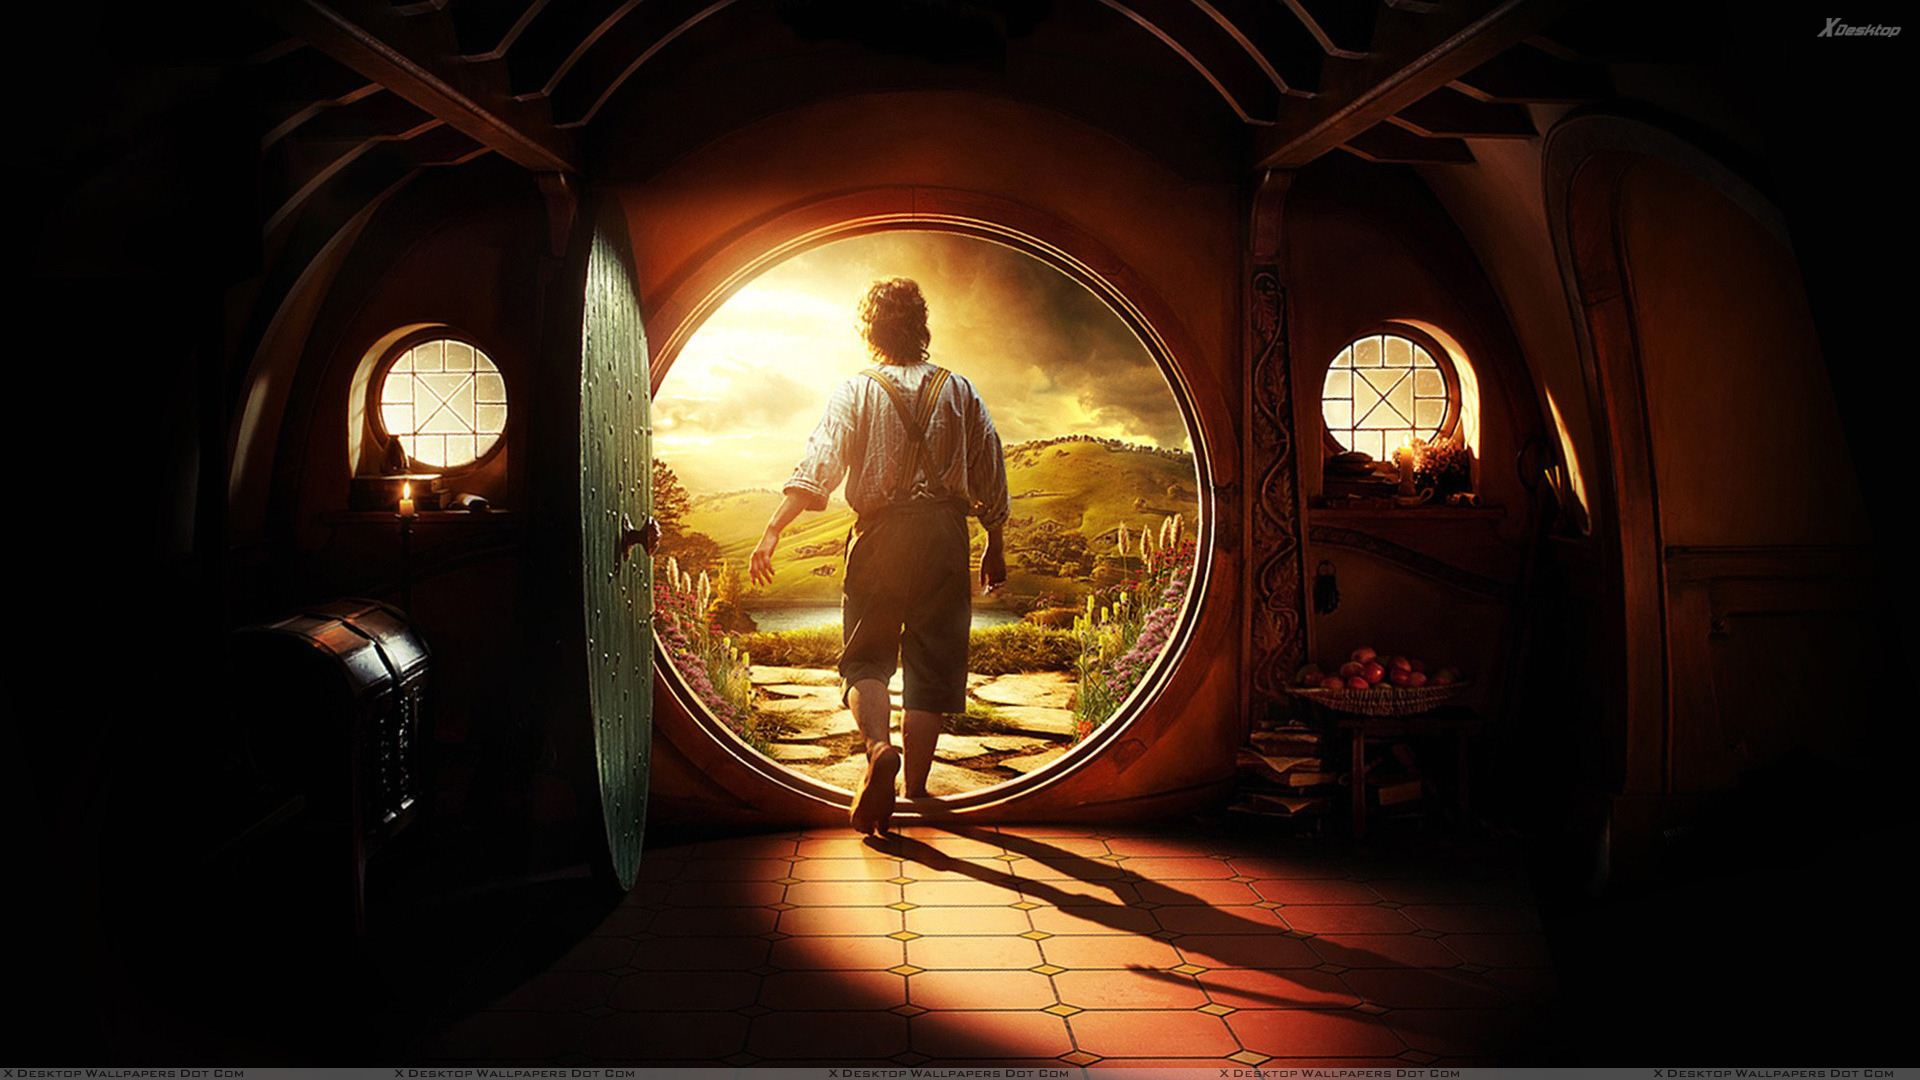 The Hobbit An Unexpected Journey Martin Freeman Going Outside 1920x1080